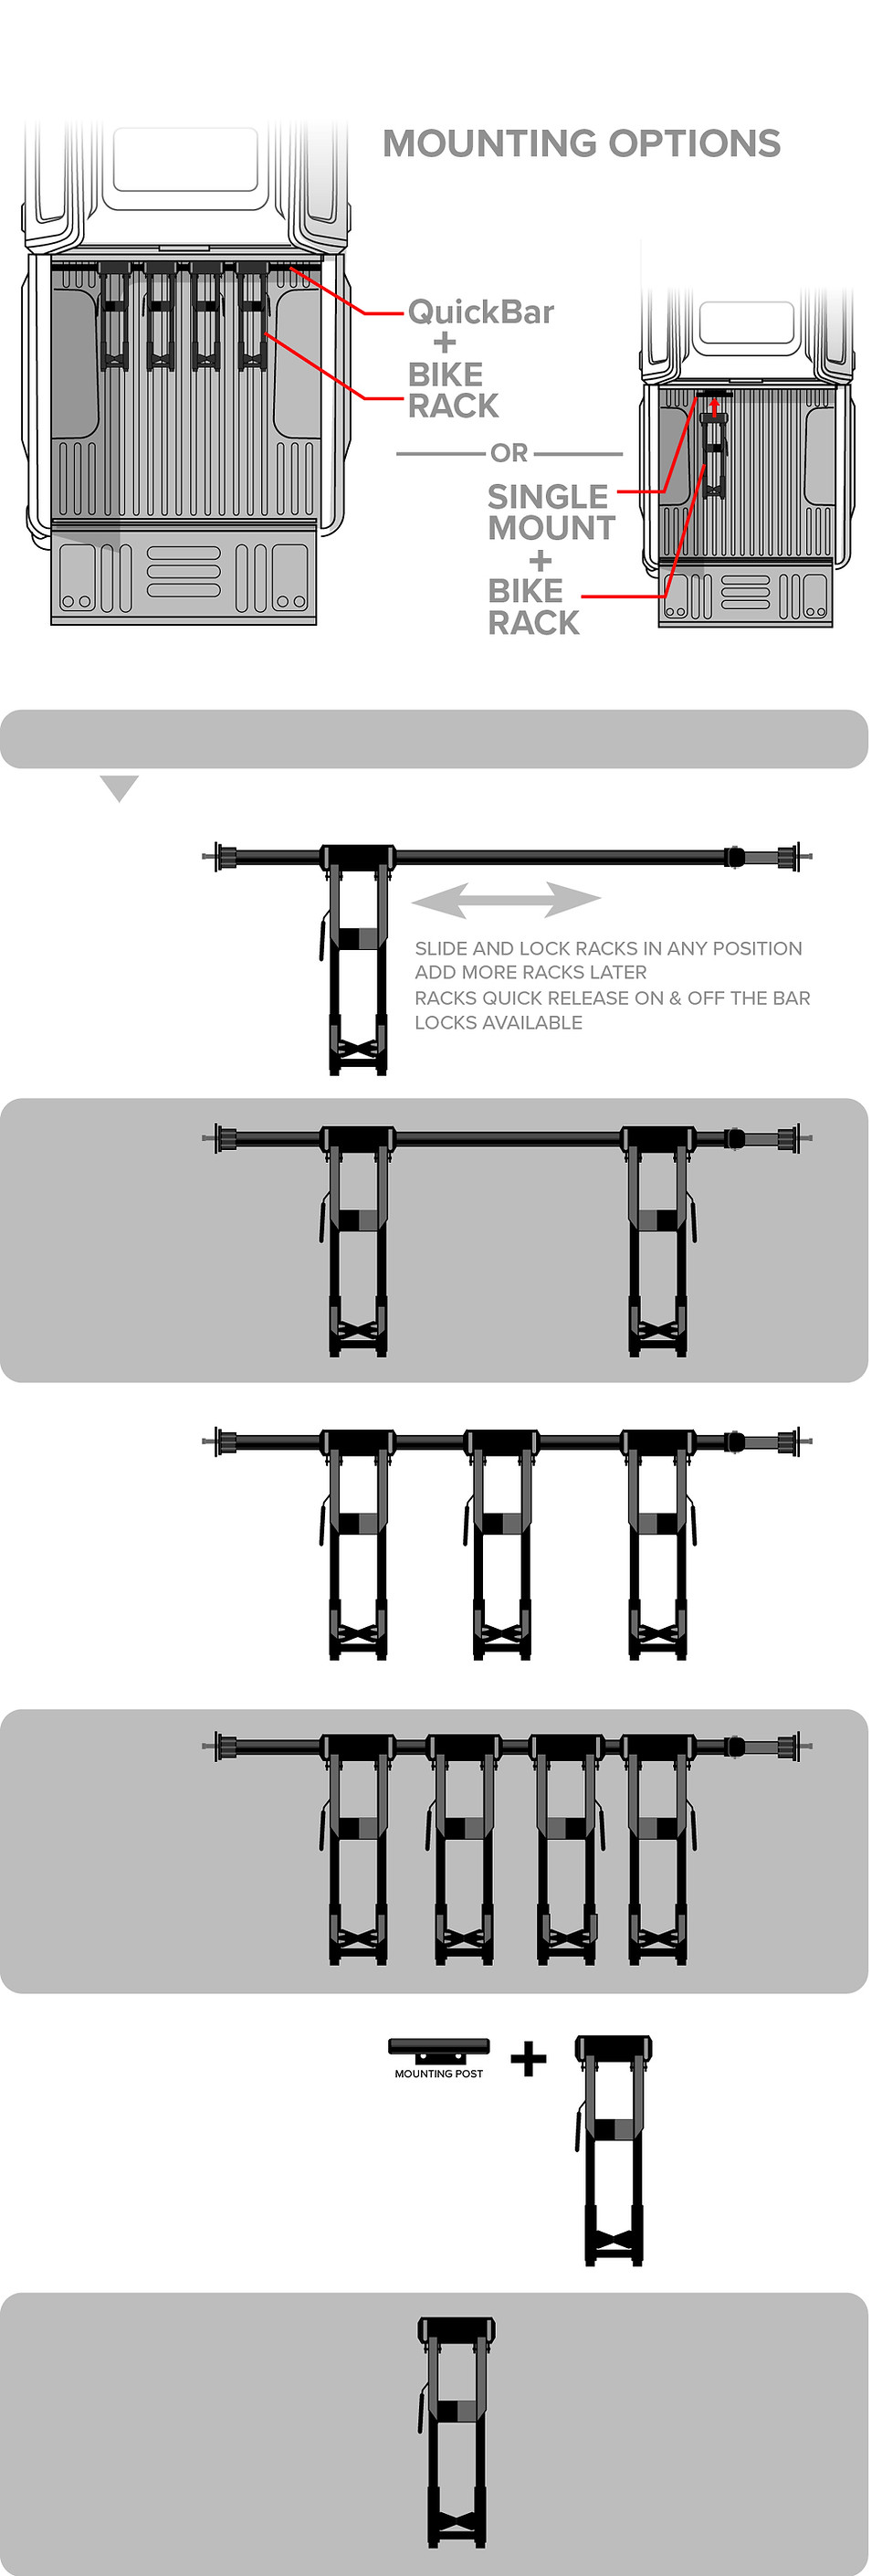 RIDE88 Truck bed bike rack mounting guide